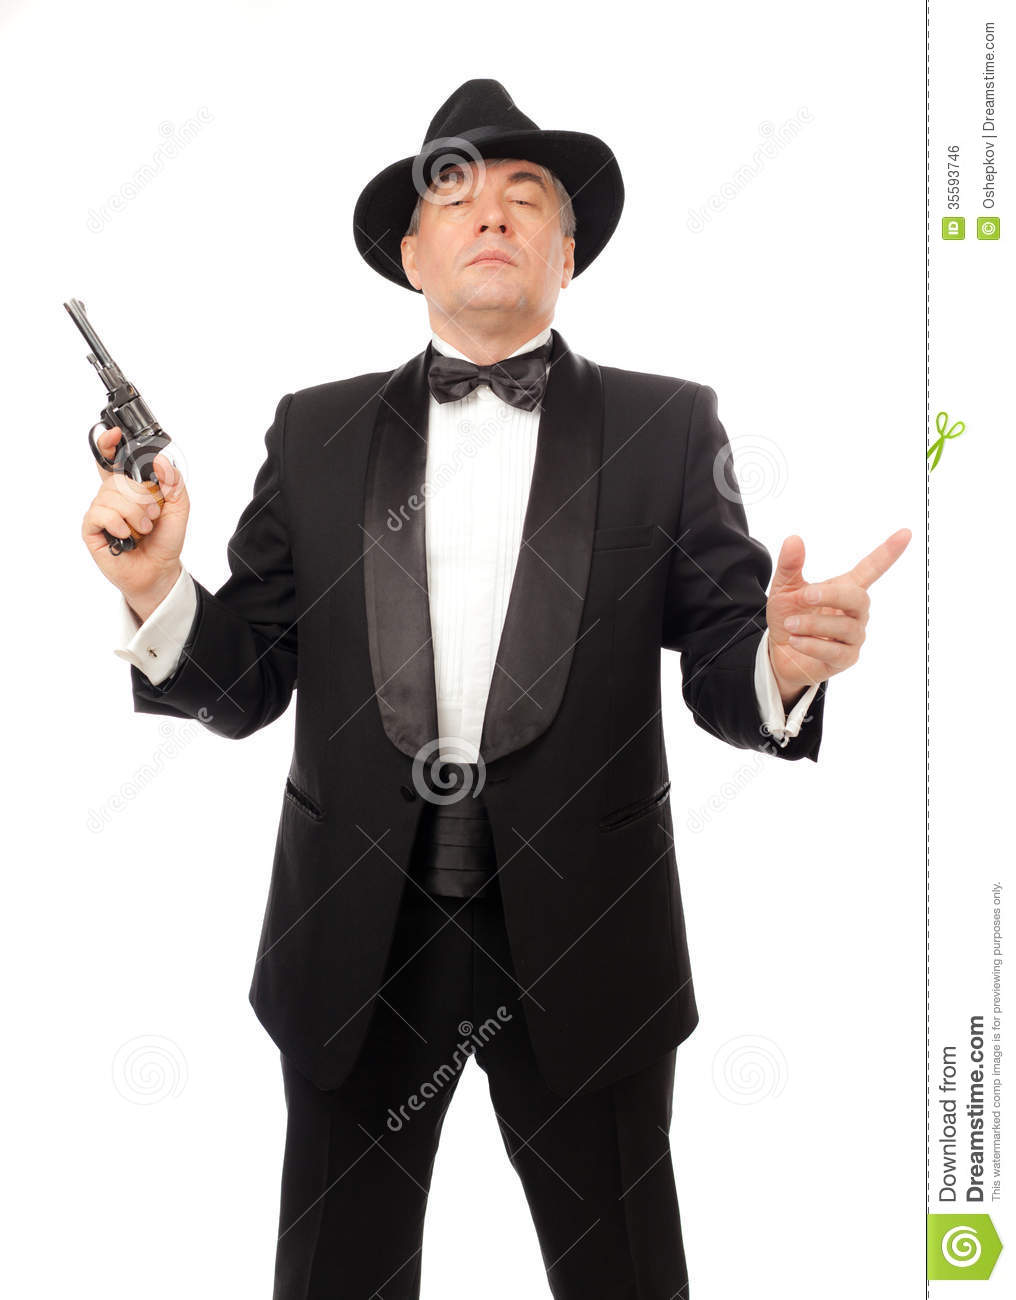 The Elegant Man In A Tuxedo Stock Photo Image Of